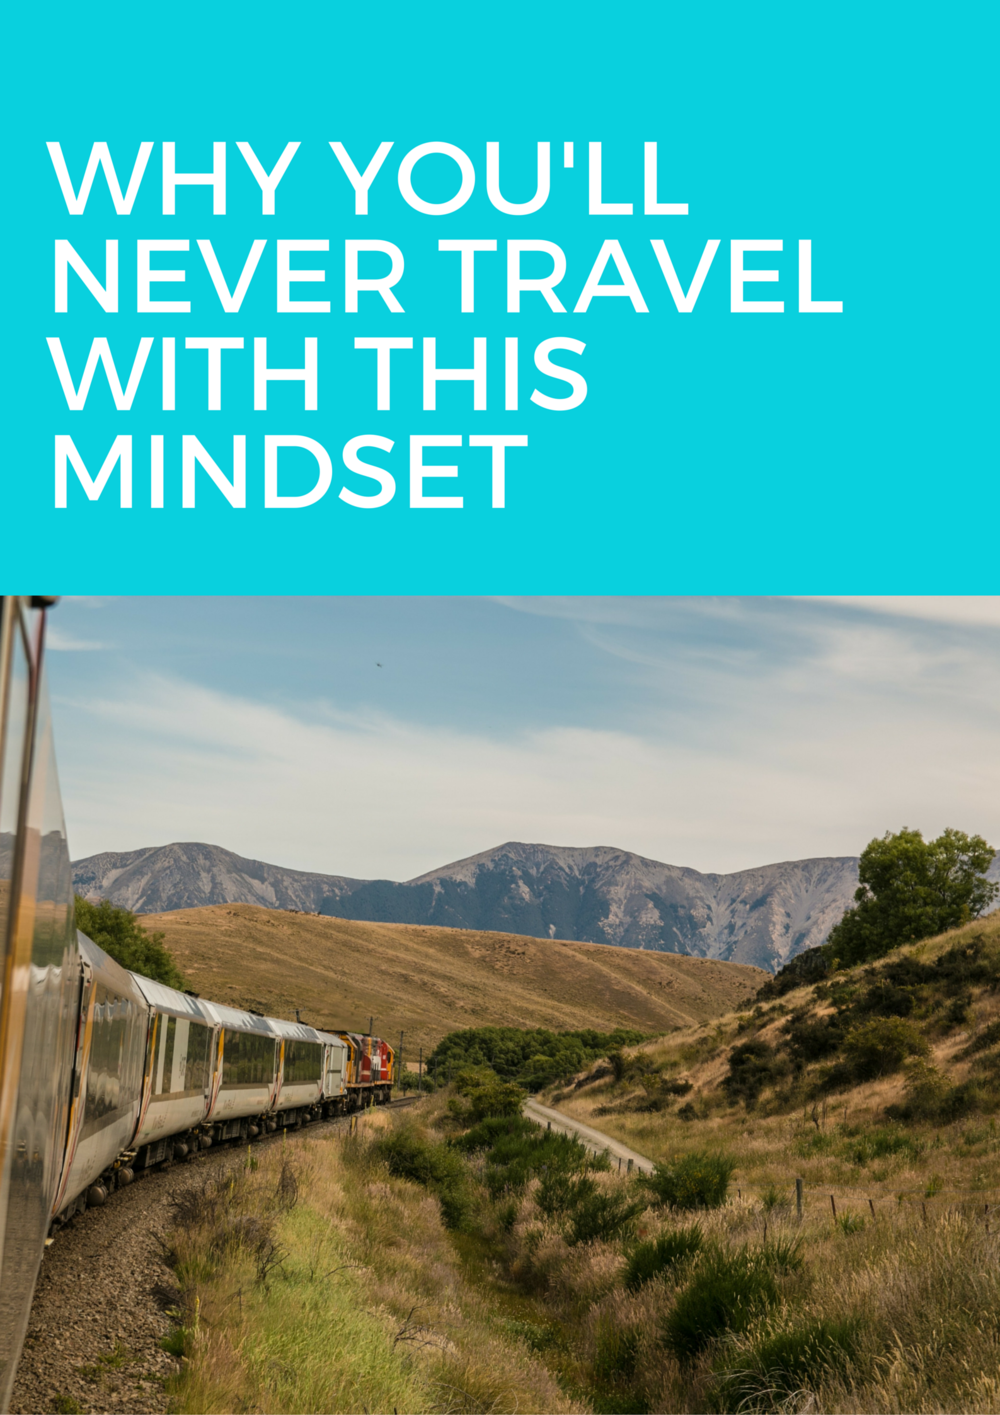 why you'll never travel if you have this mindset